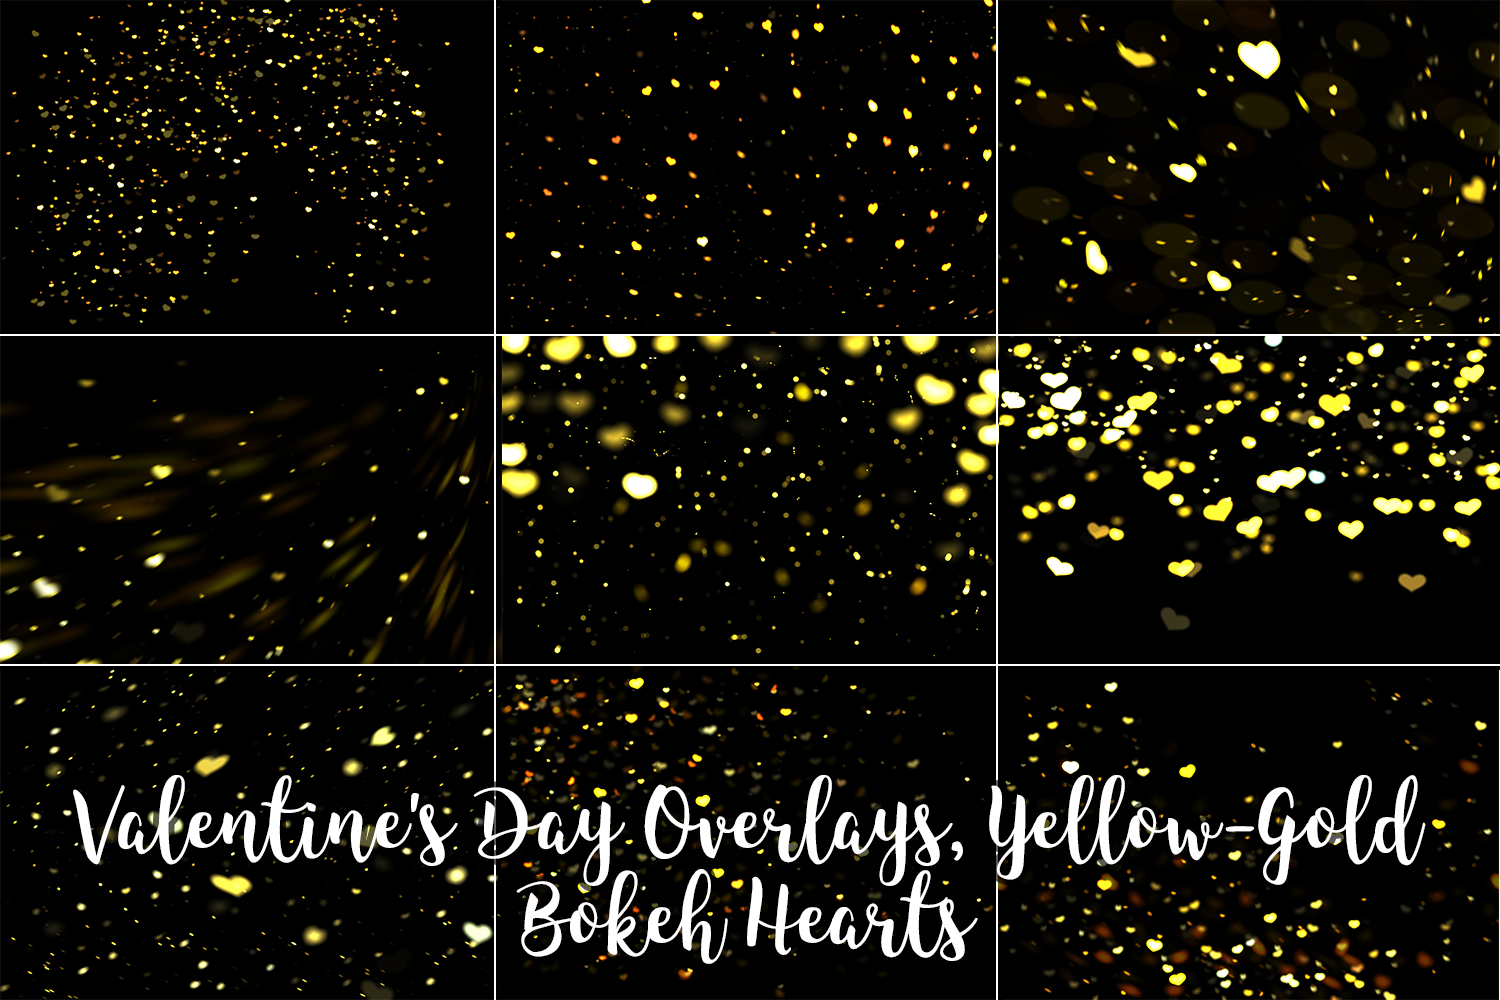 Valentine's Day Overlays, Yellow Gold Hearts Bokeh Overlays example image 2